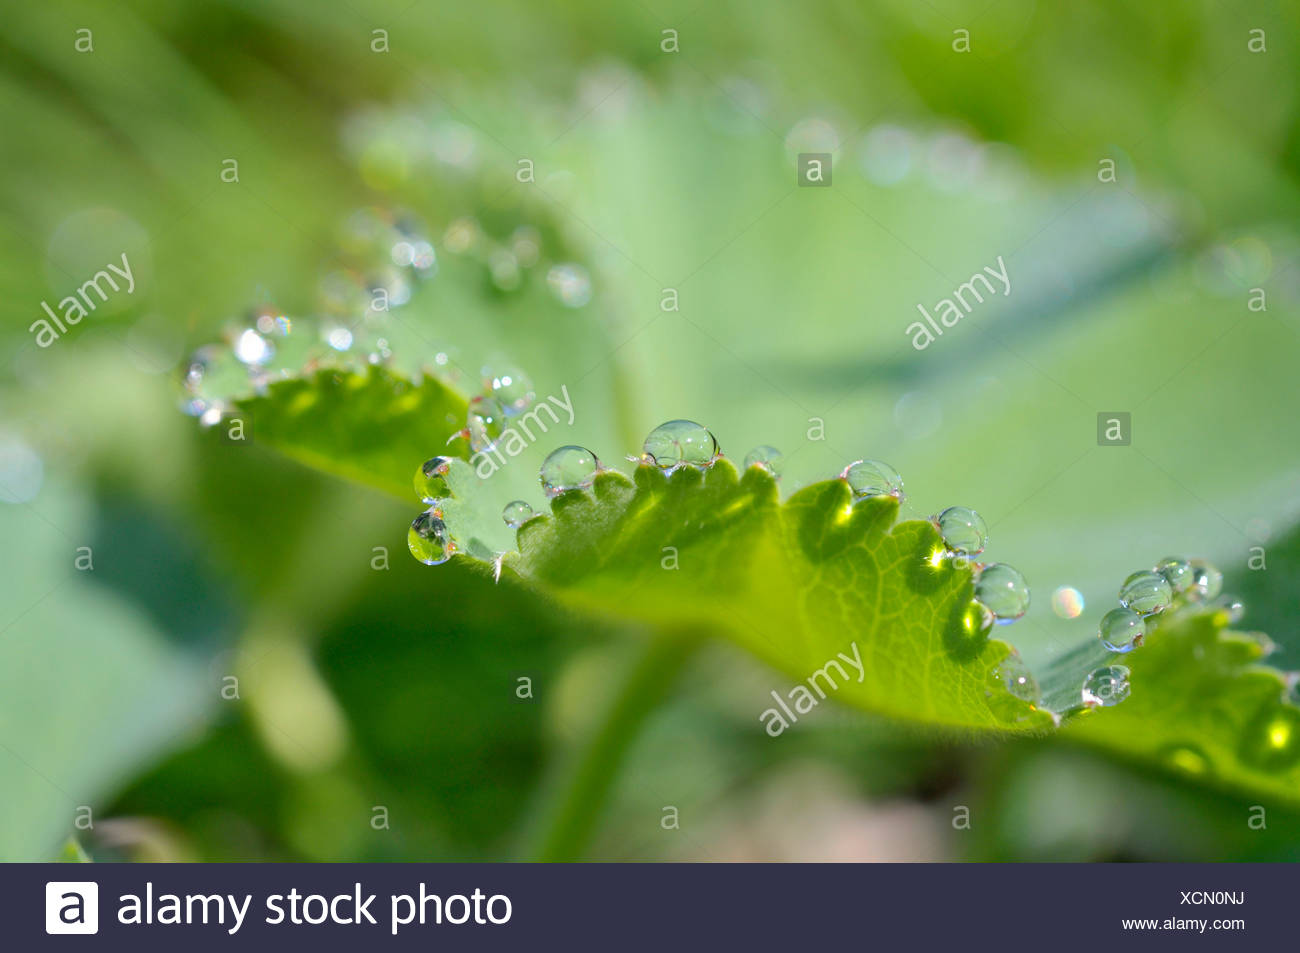 Drops of water on the leaf of a Lady's Mantle (Alchemilla) - Stock Image